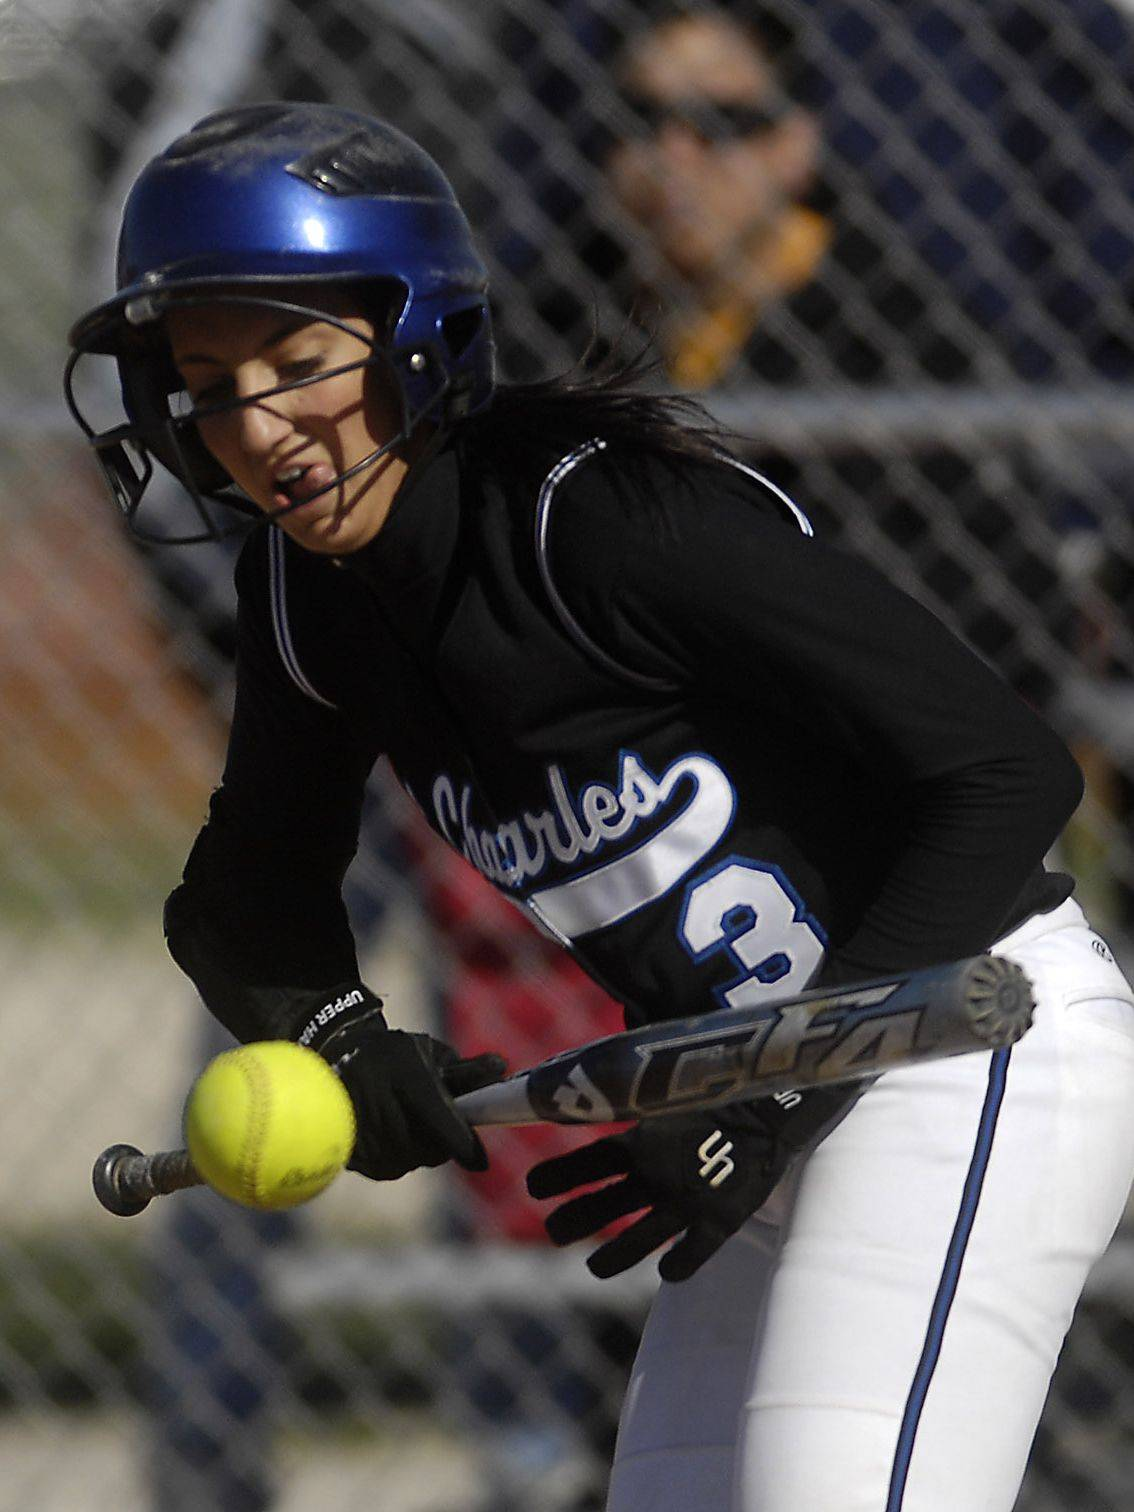 St. Charles North's Natalie Capone gets a bunt down against St. Charles East during Tuesday's game at East.